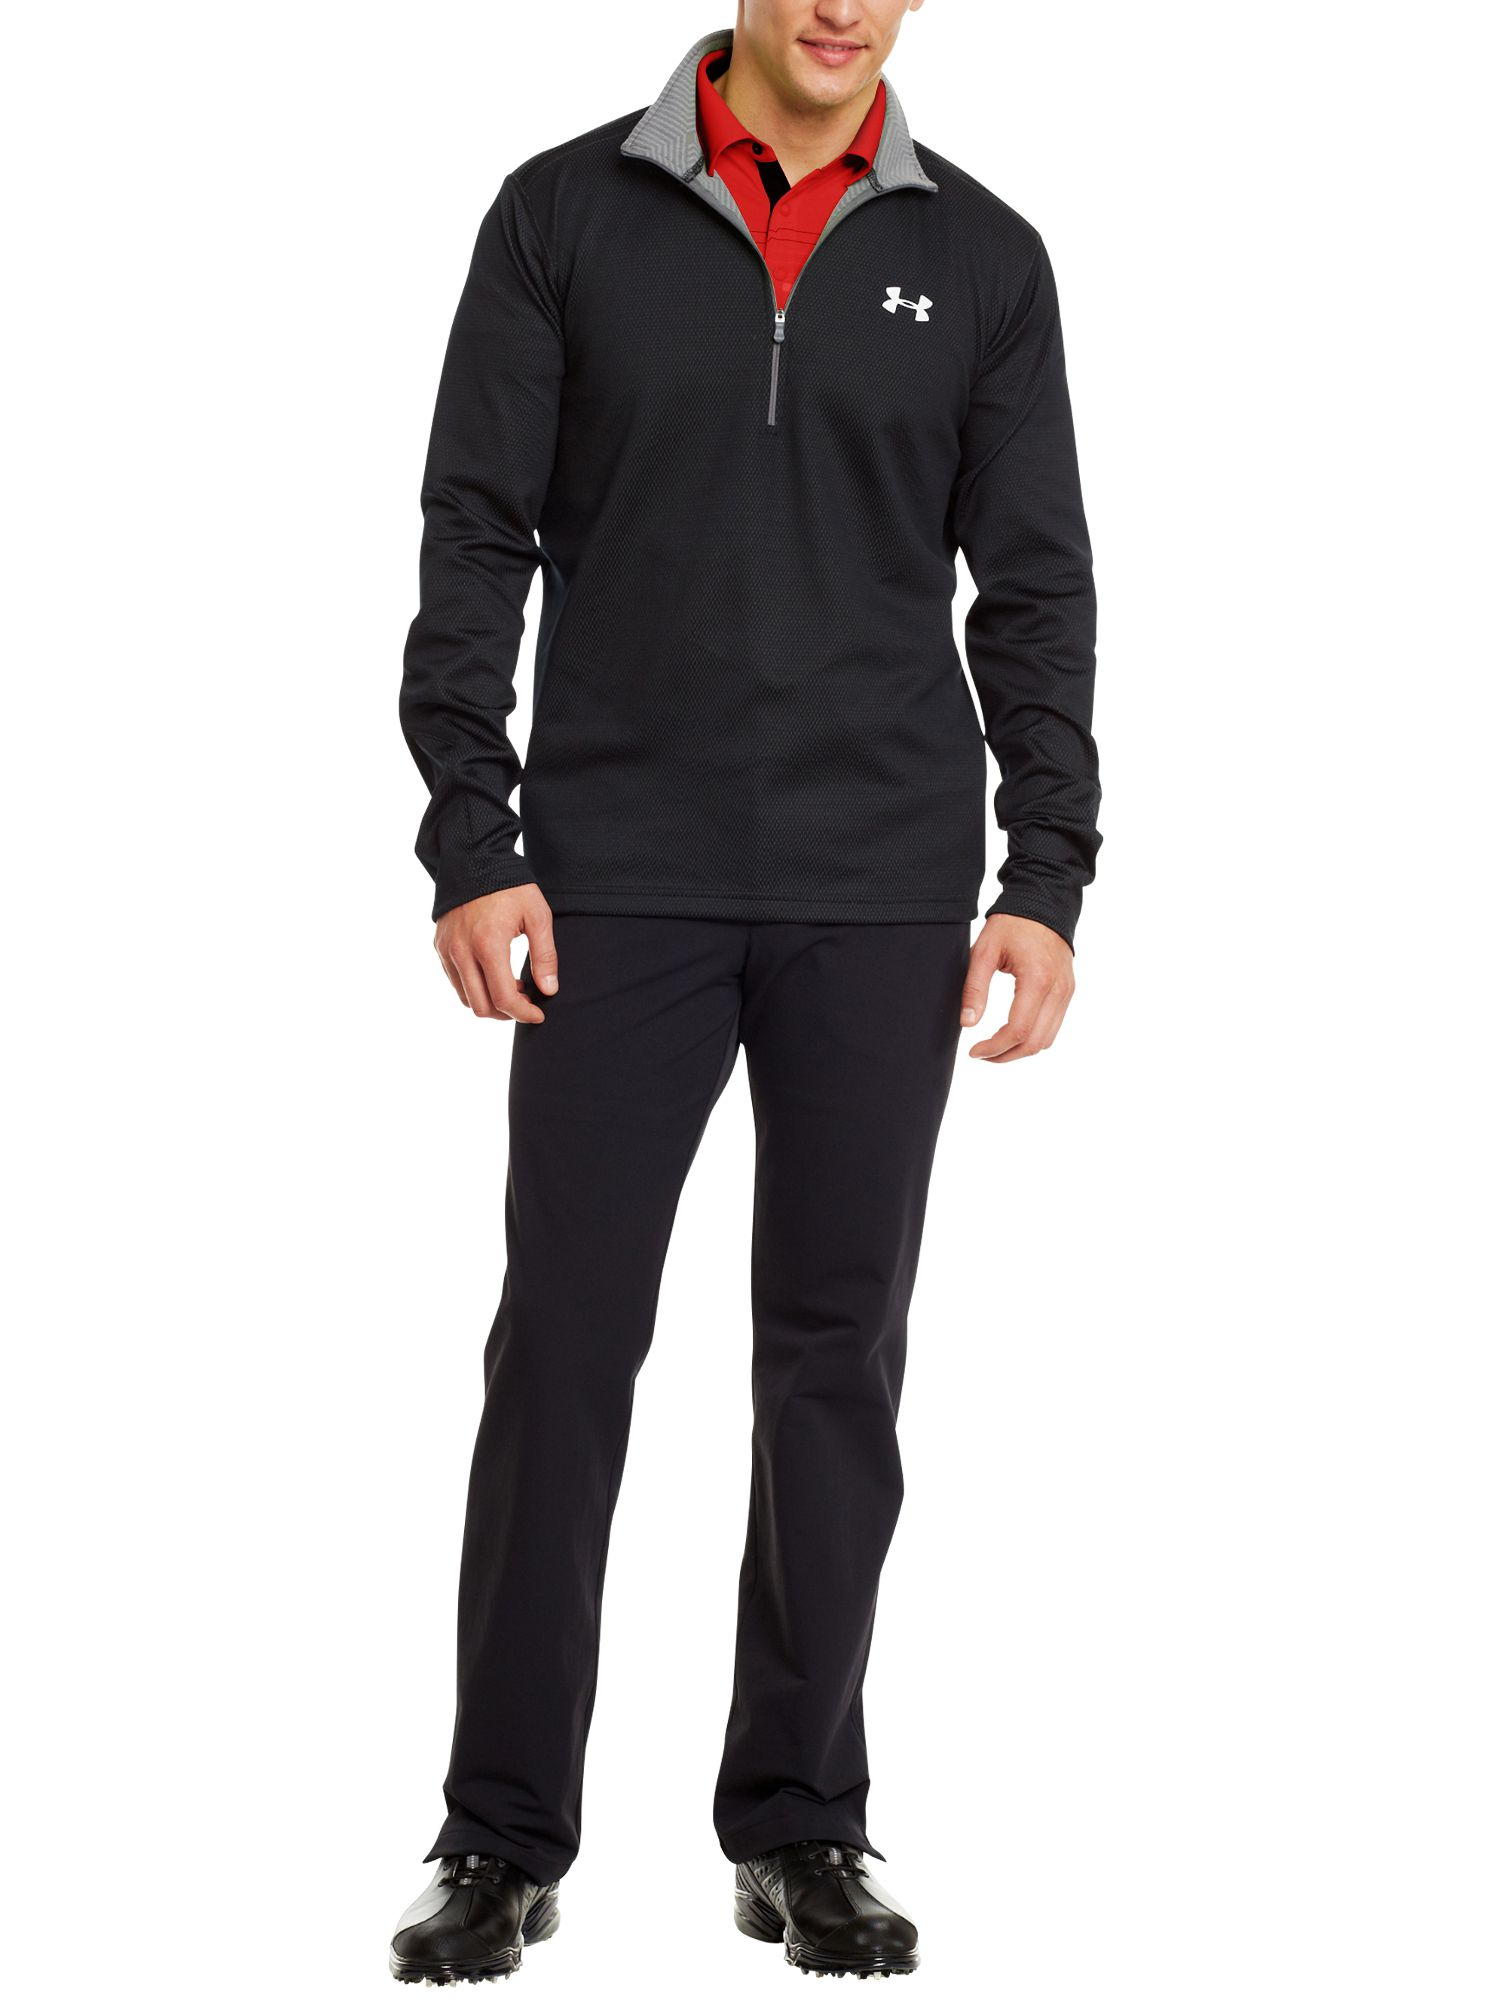 Thermo coldgear infrared golf 1/4 zip